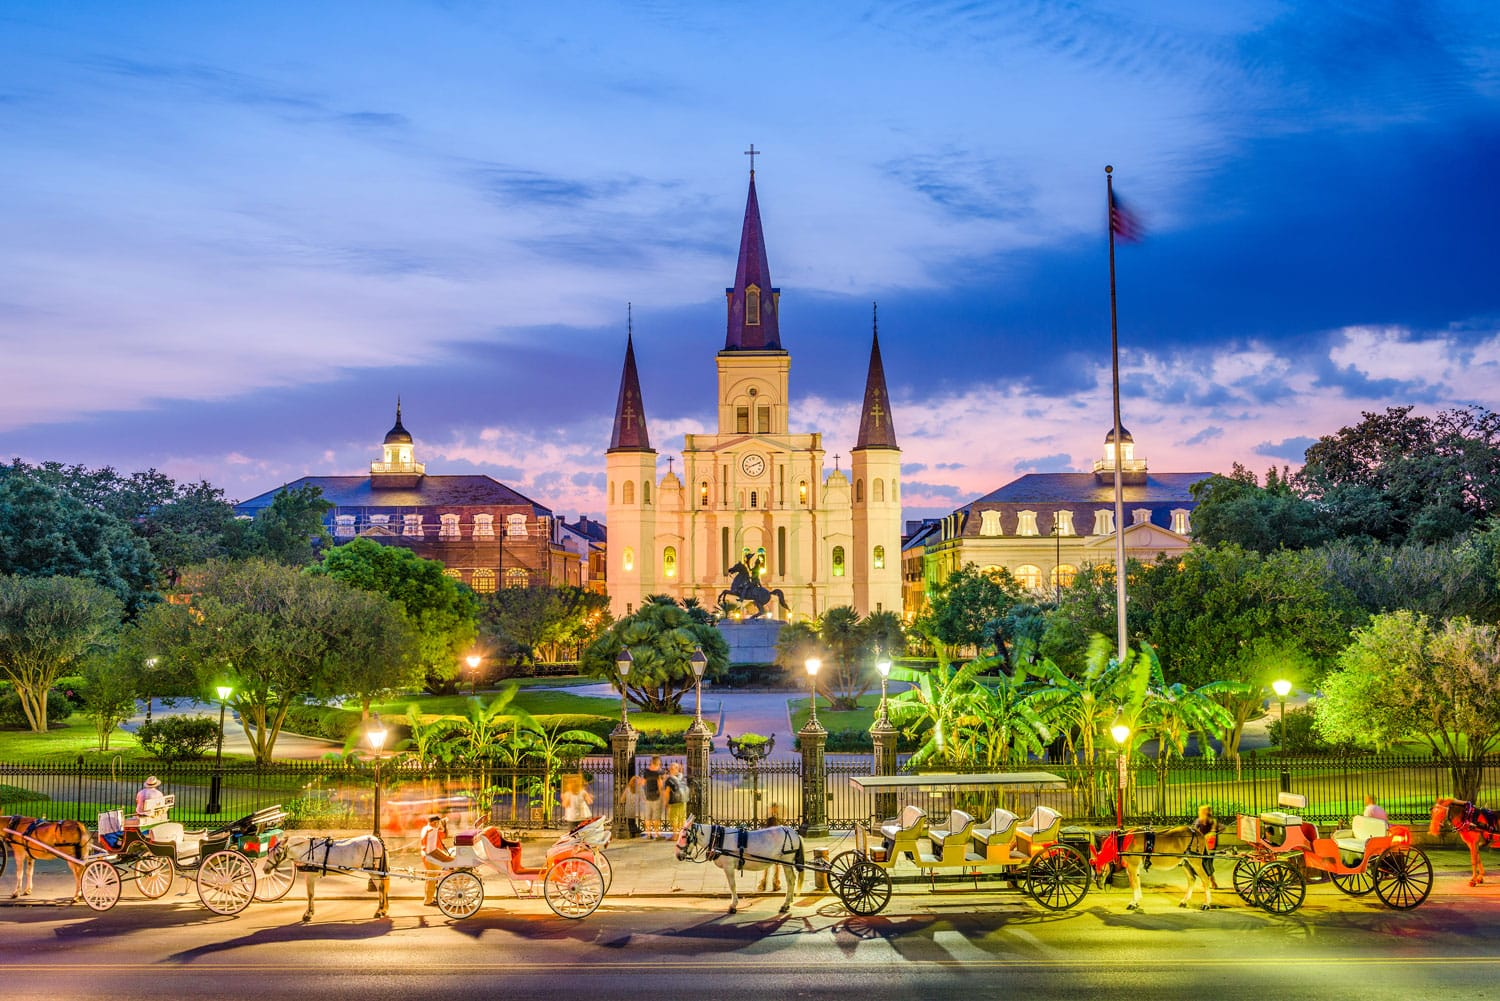 St. Louis Cathedral and Jackson Square in New Orleans, Louisiana, USA